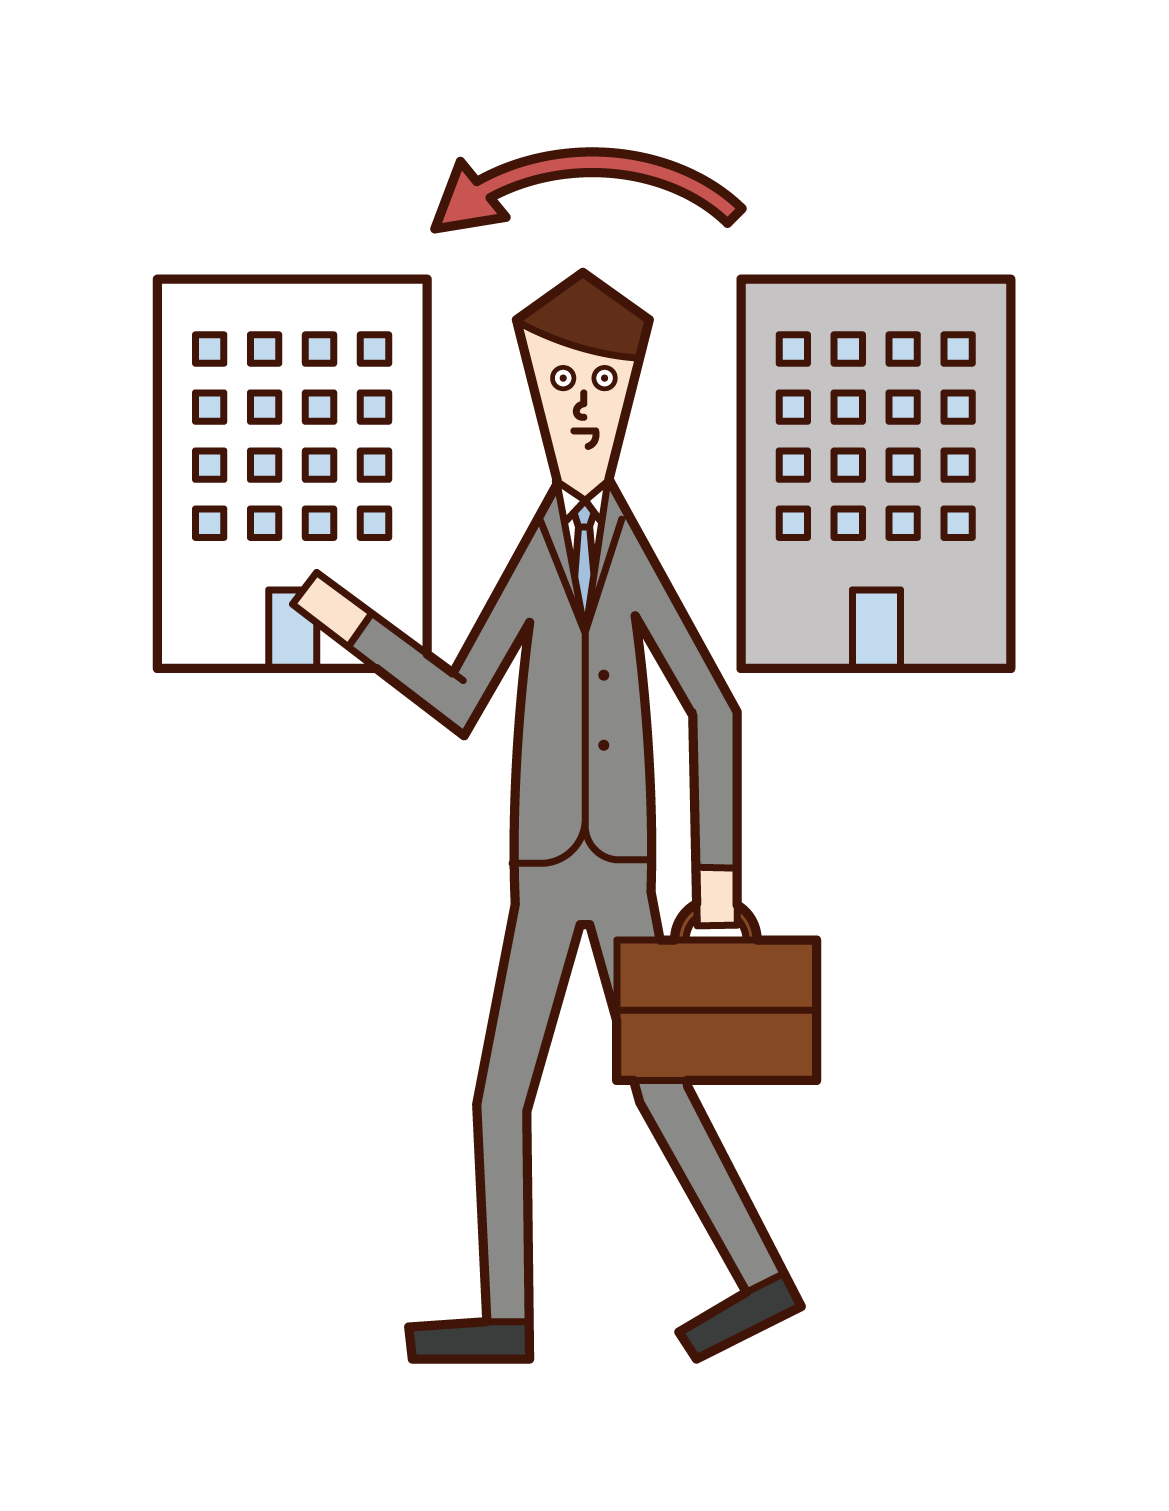 Illustration of a temporary staffing company and a man who changes jobs